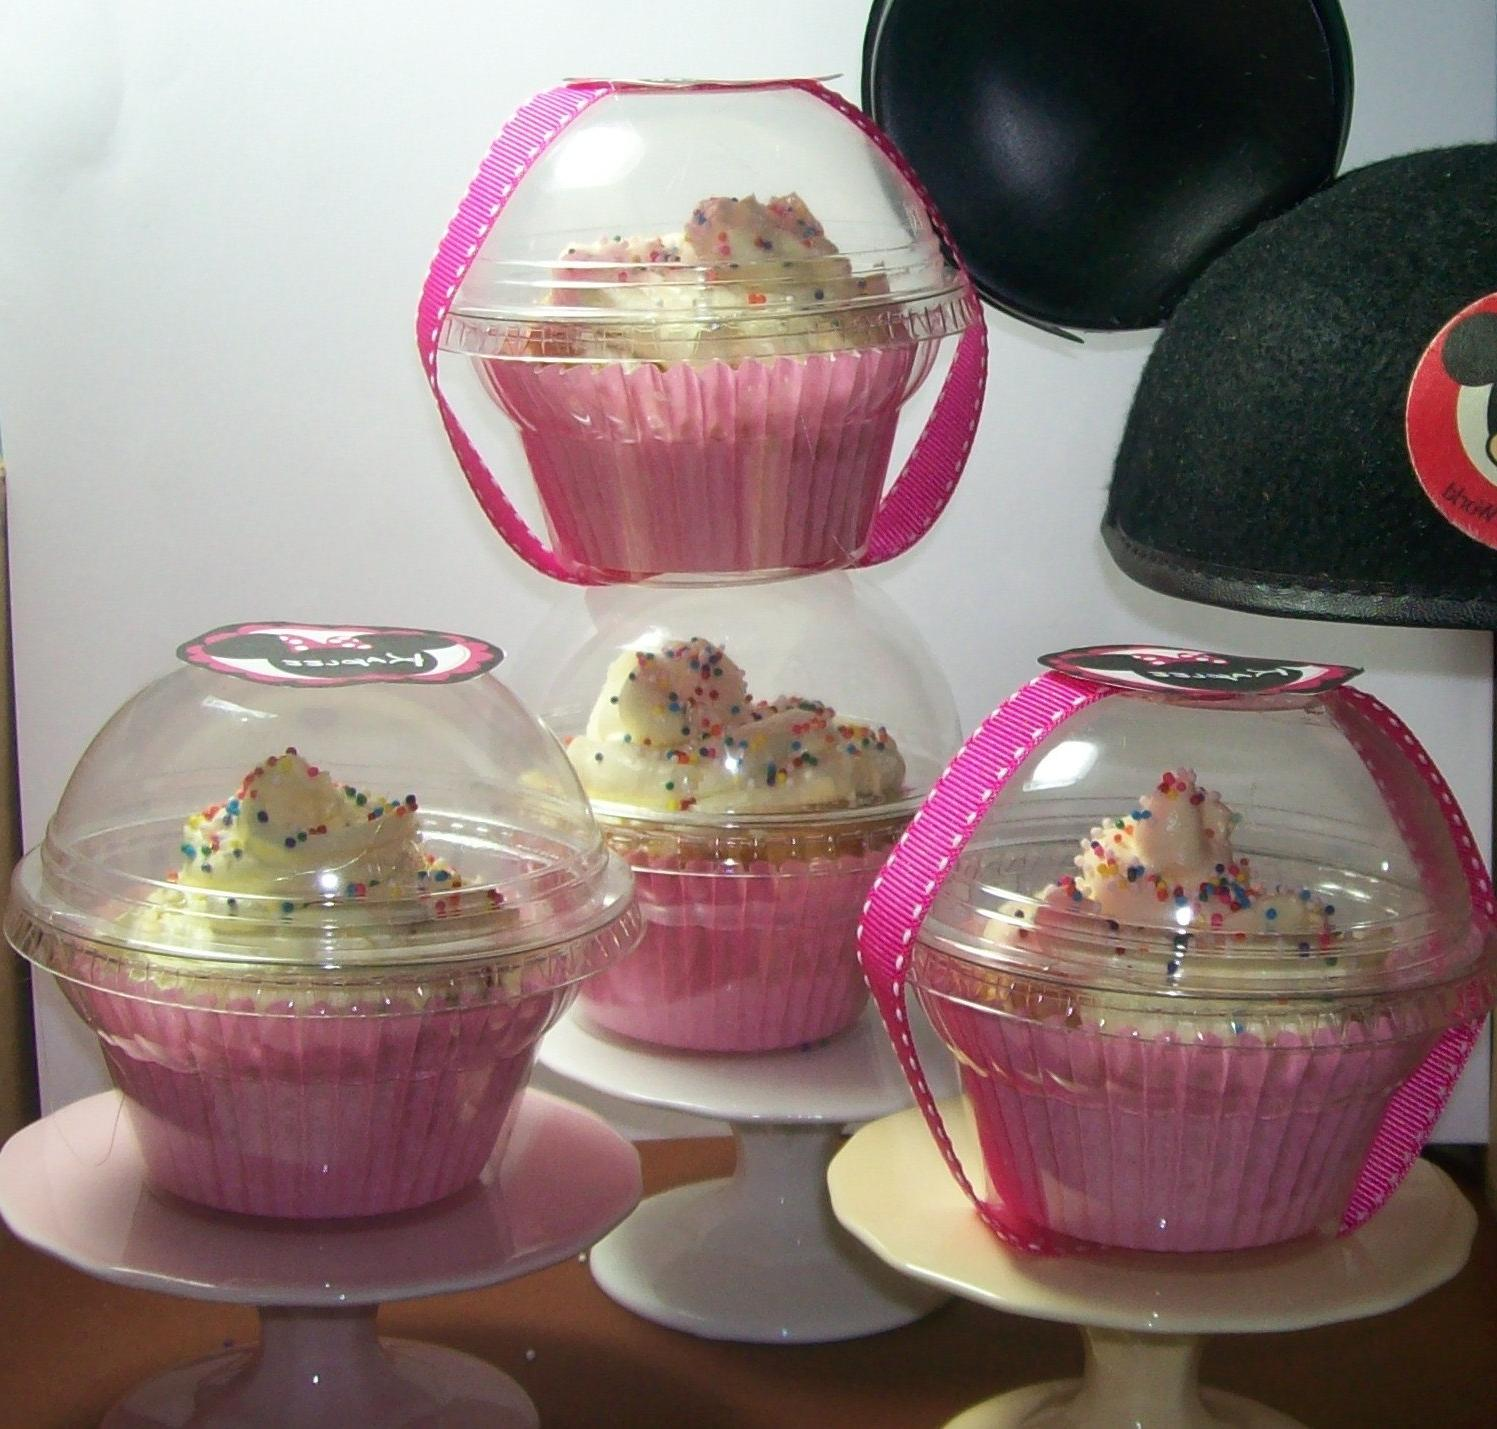 60 Cupcake Favor Boxes - PRIORITY SHIPPING. From cupcakegatherings